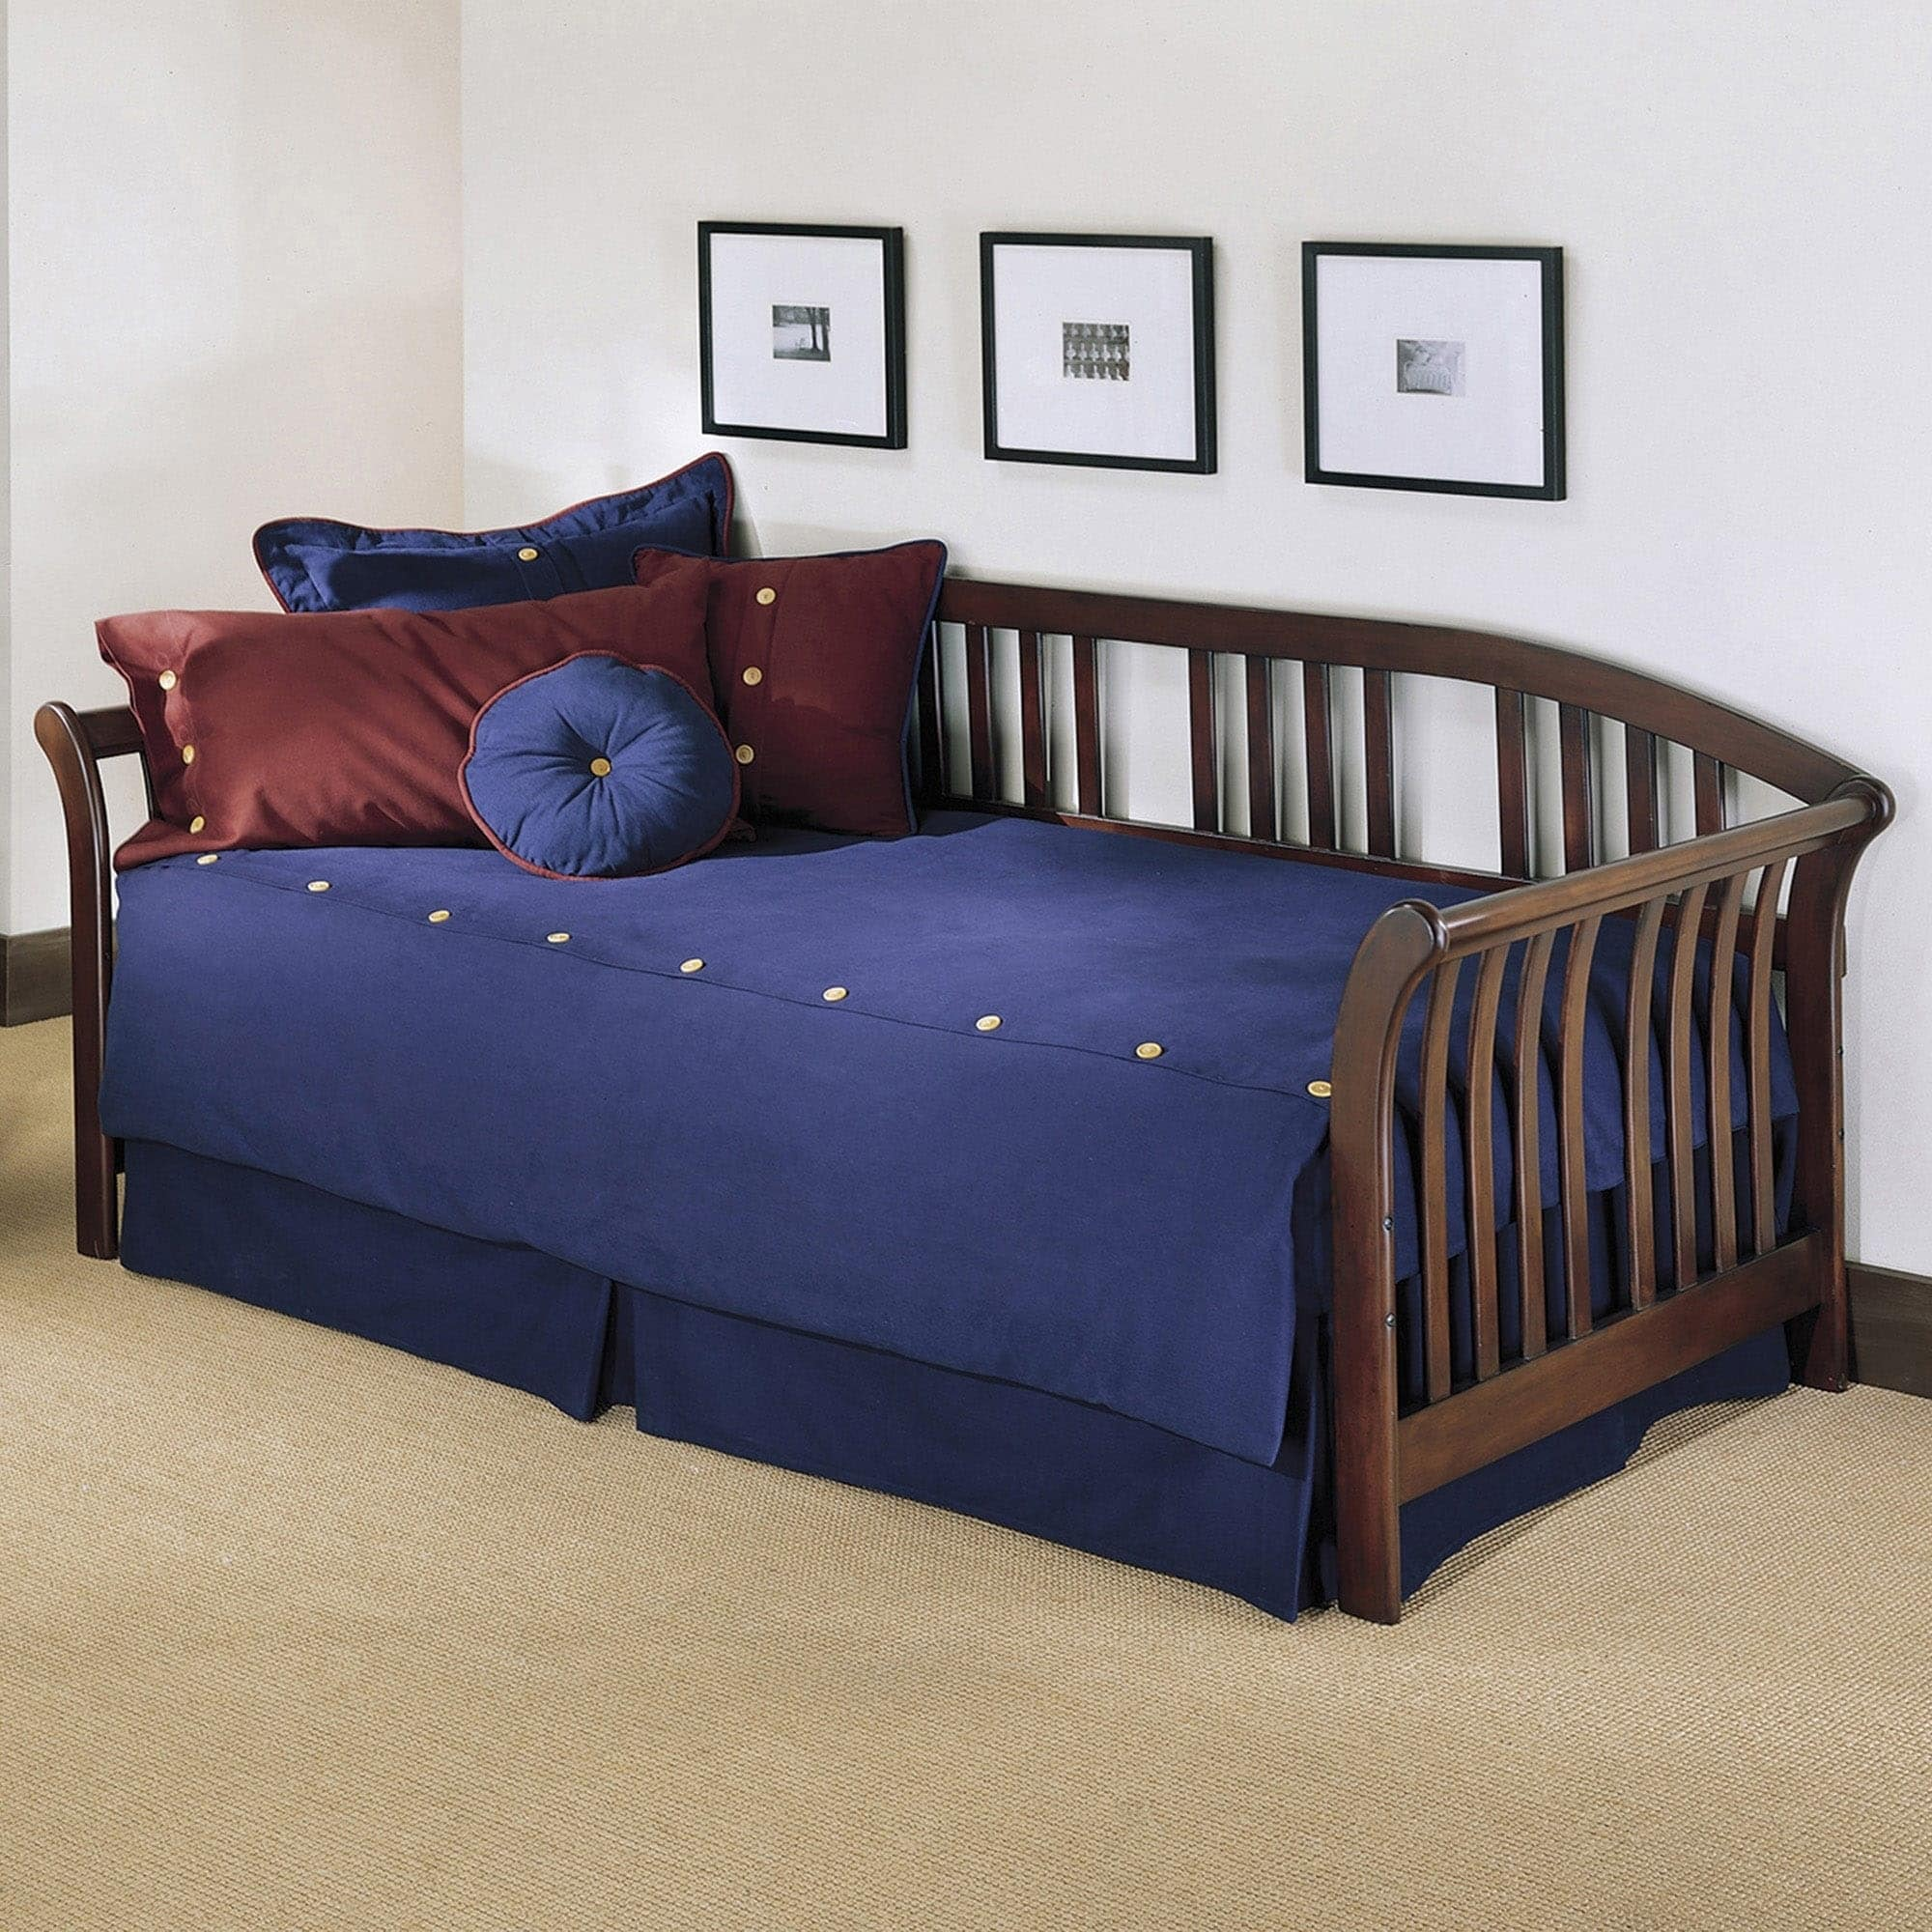 Fashion Bed Group Salem Brown Wood Daybed, Size Twin